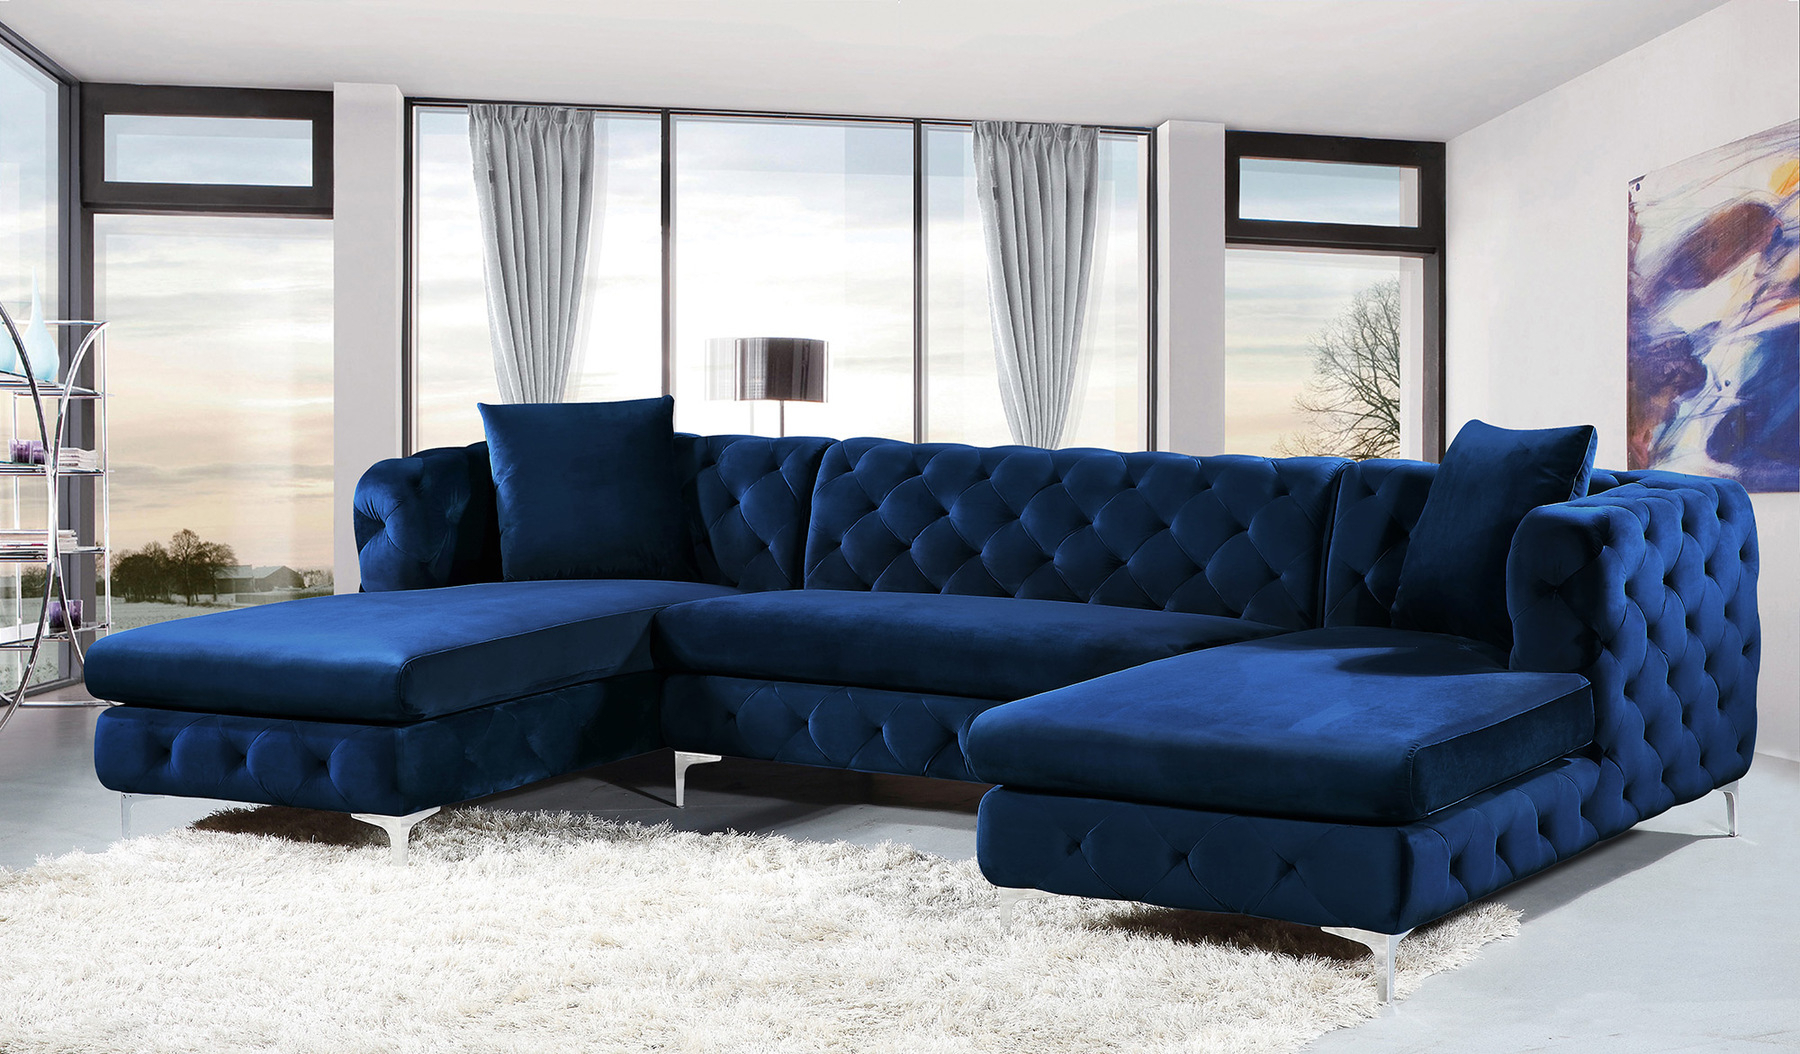 Benton 4 Piece Sectionals Pertaining To Recent Blue Sectional Sofa Modular Sofas For Small Spaces Ashley Benton (View 4 of 20)